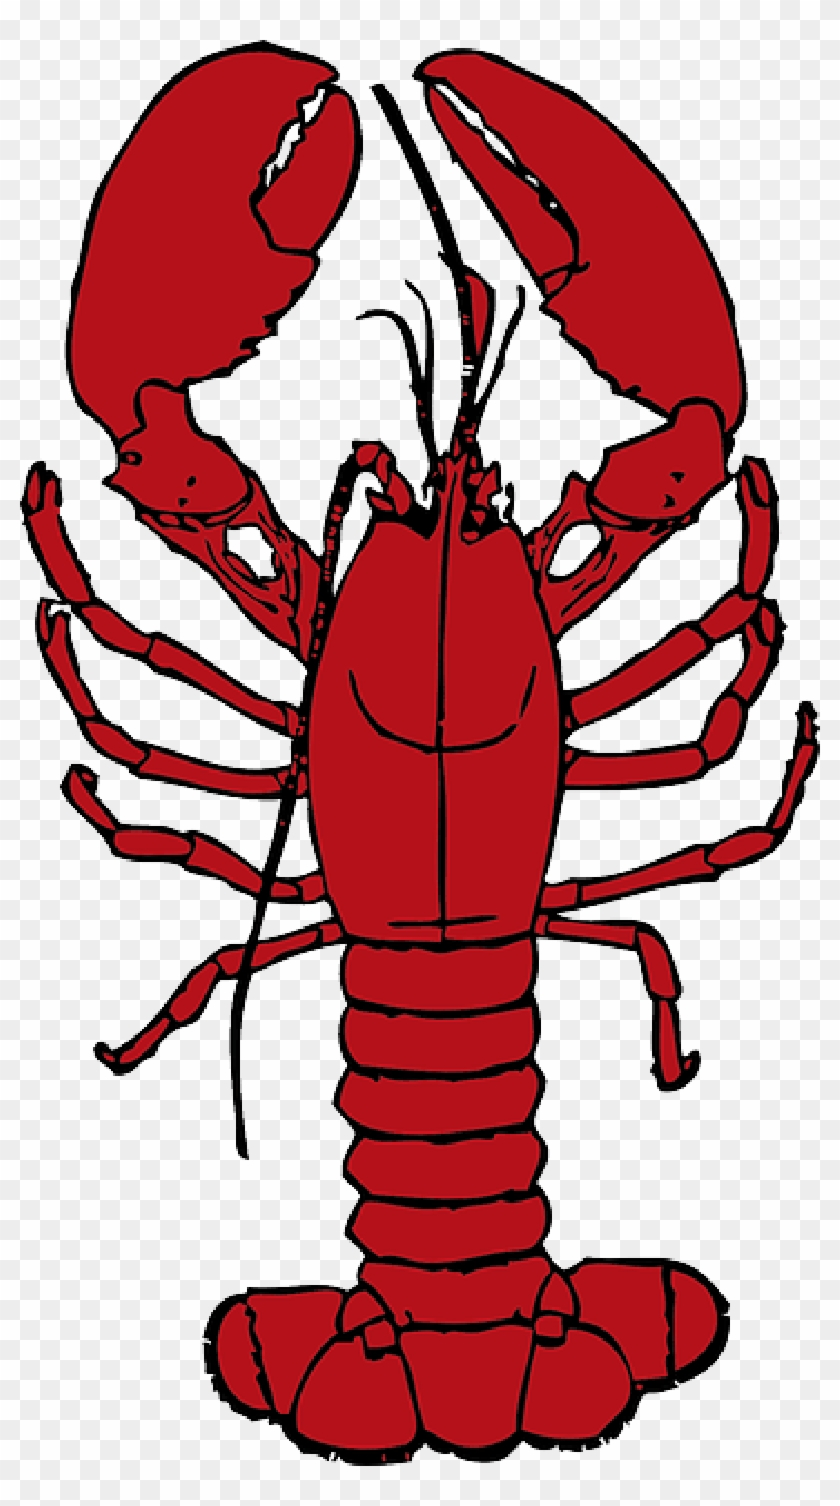 Cartoon, Ocean, Lobster, Crab, Sea, Crustaceans, Hermit.